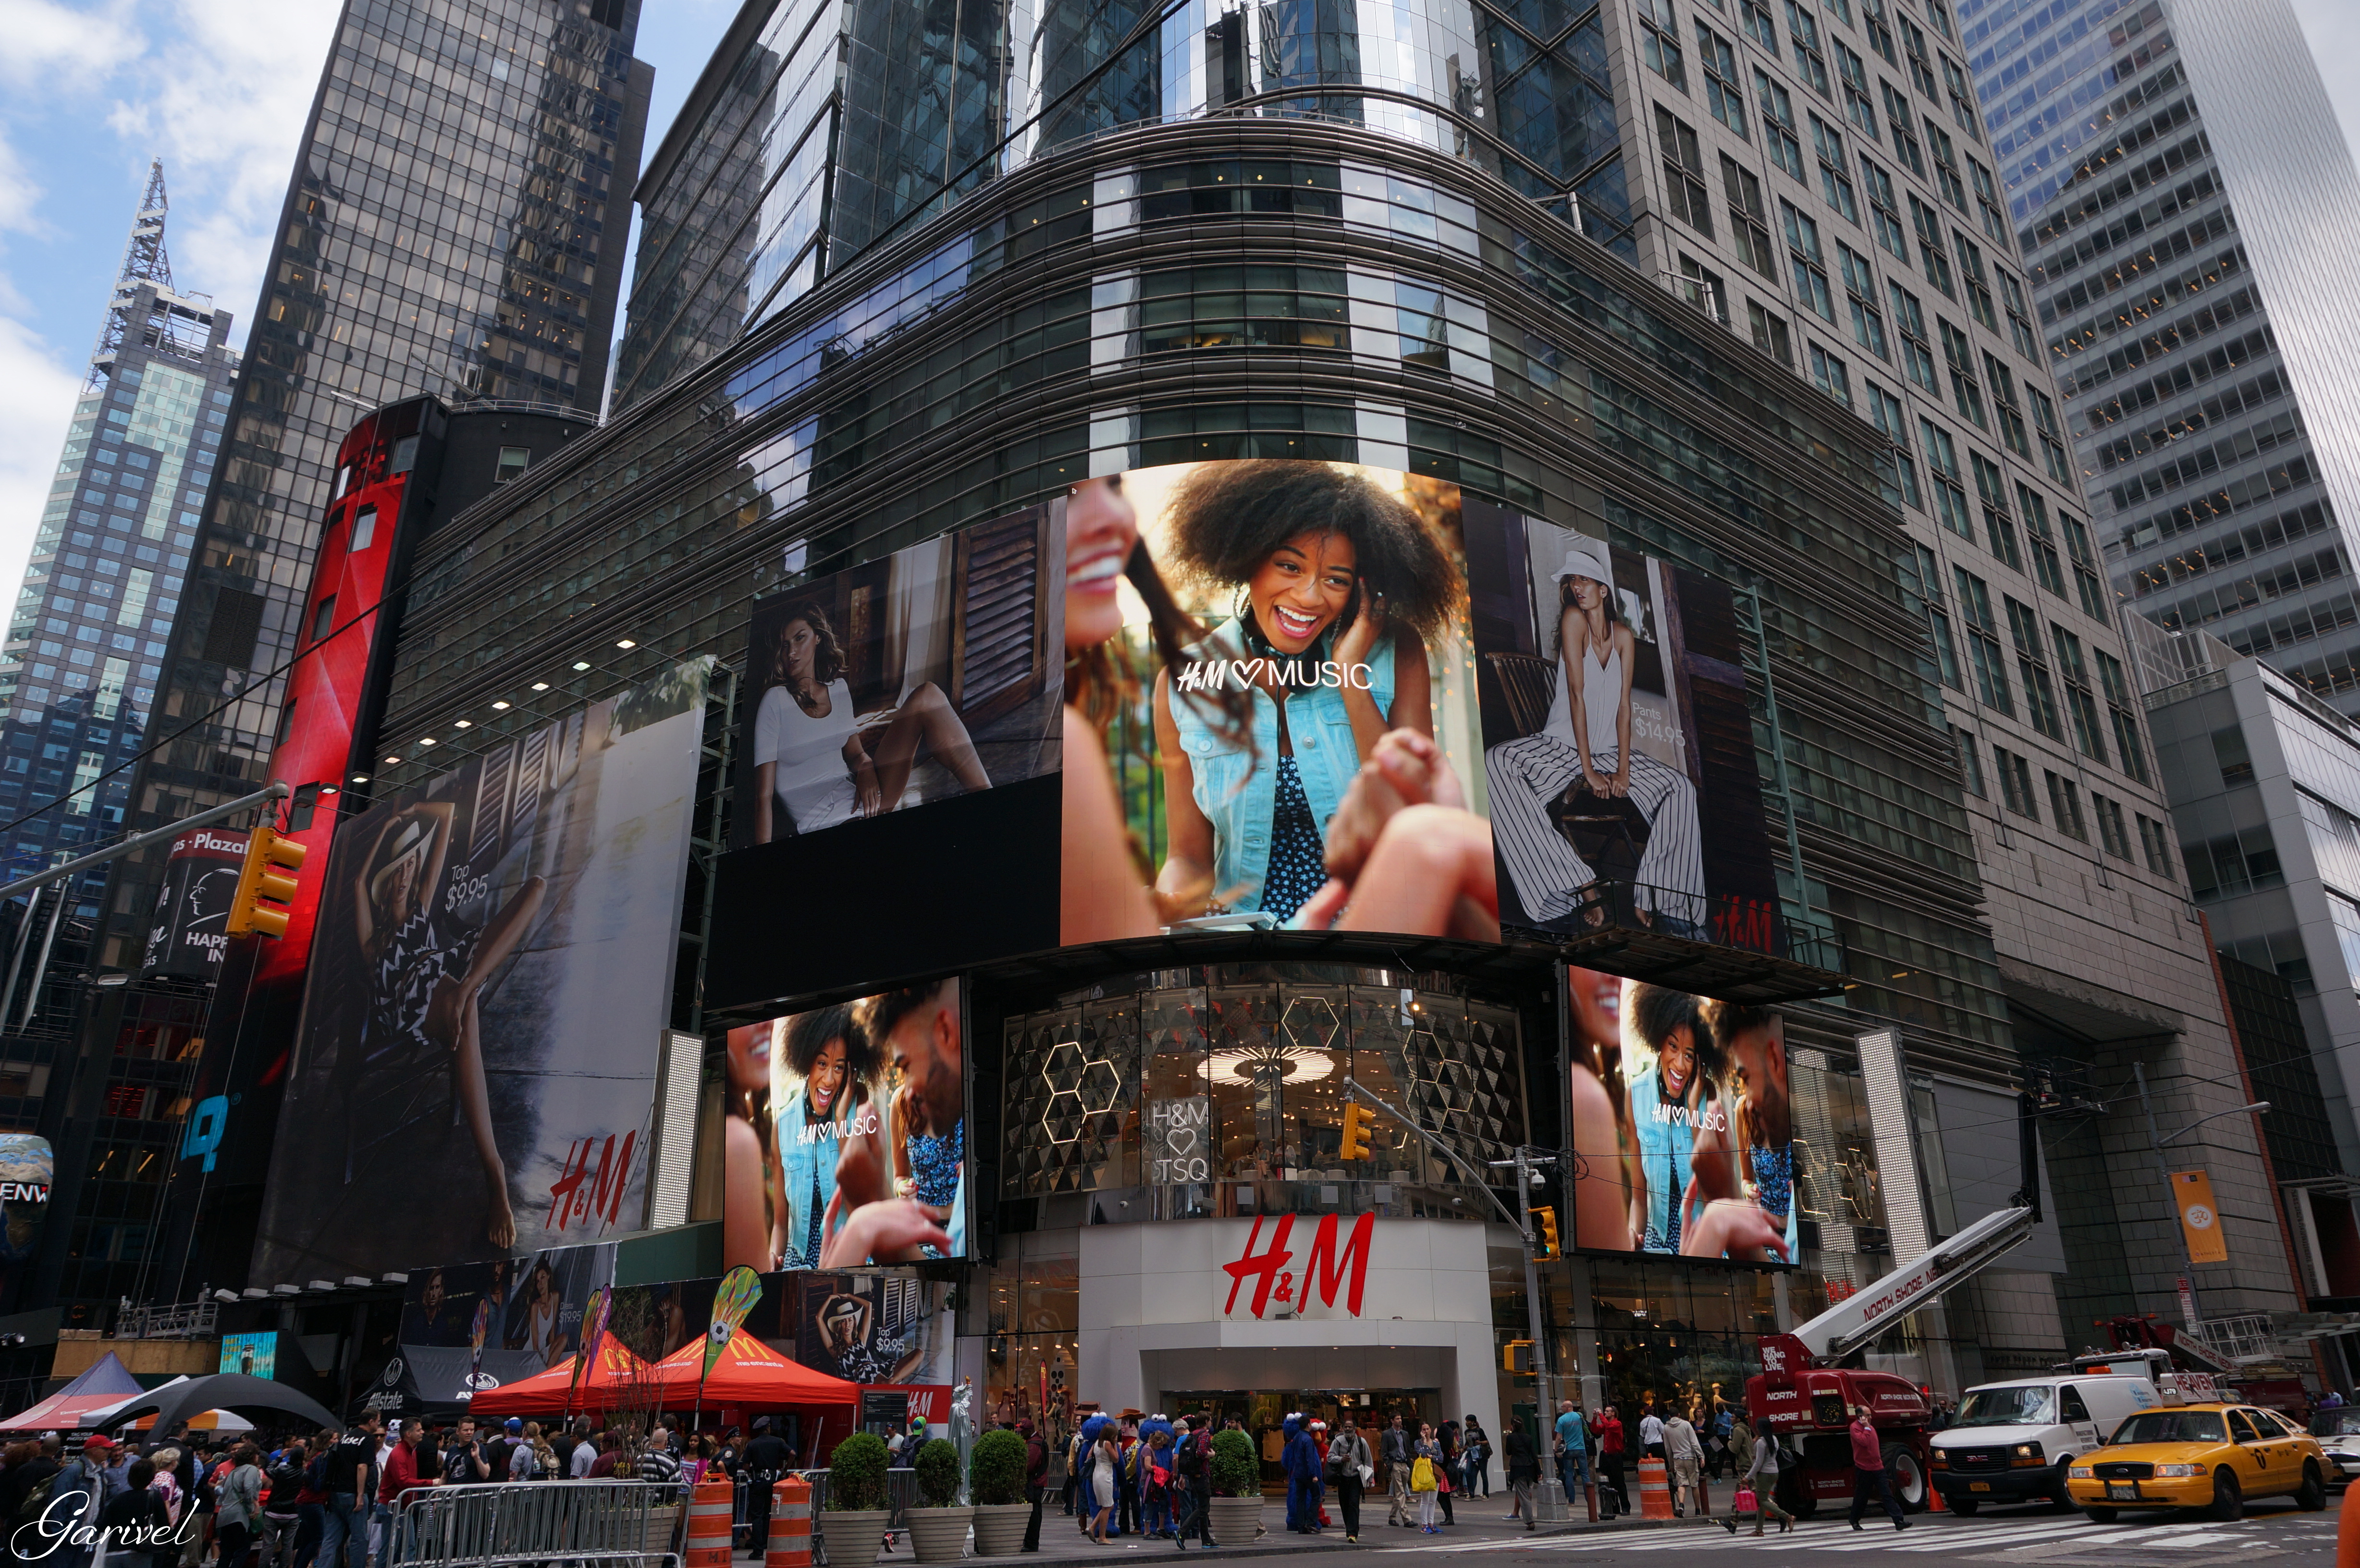 H&M, which operates in 64 markets but whose U.S. business is its second largest after Germany, has been on a store opening tear for years, including recent new locations in such prime spots as New.